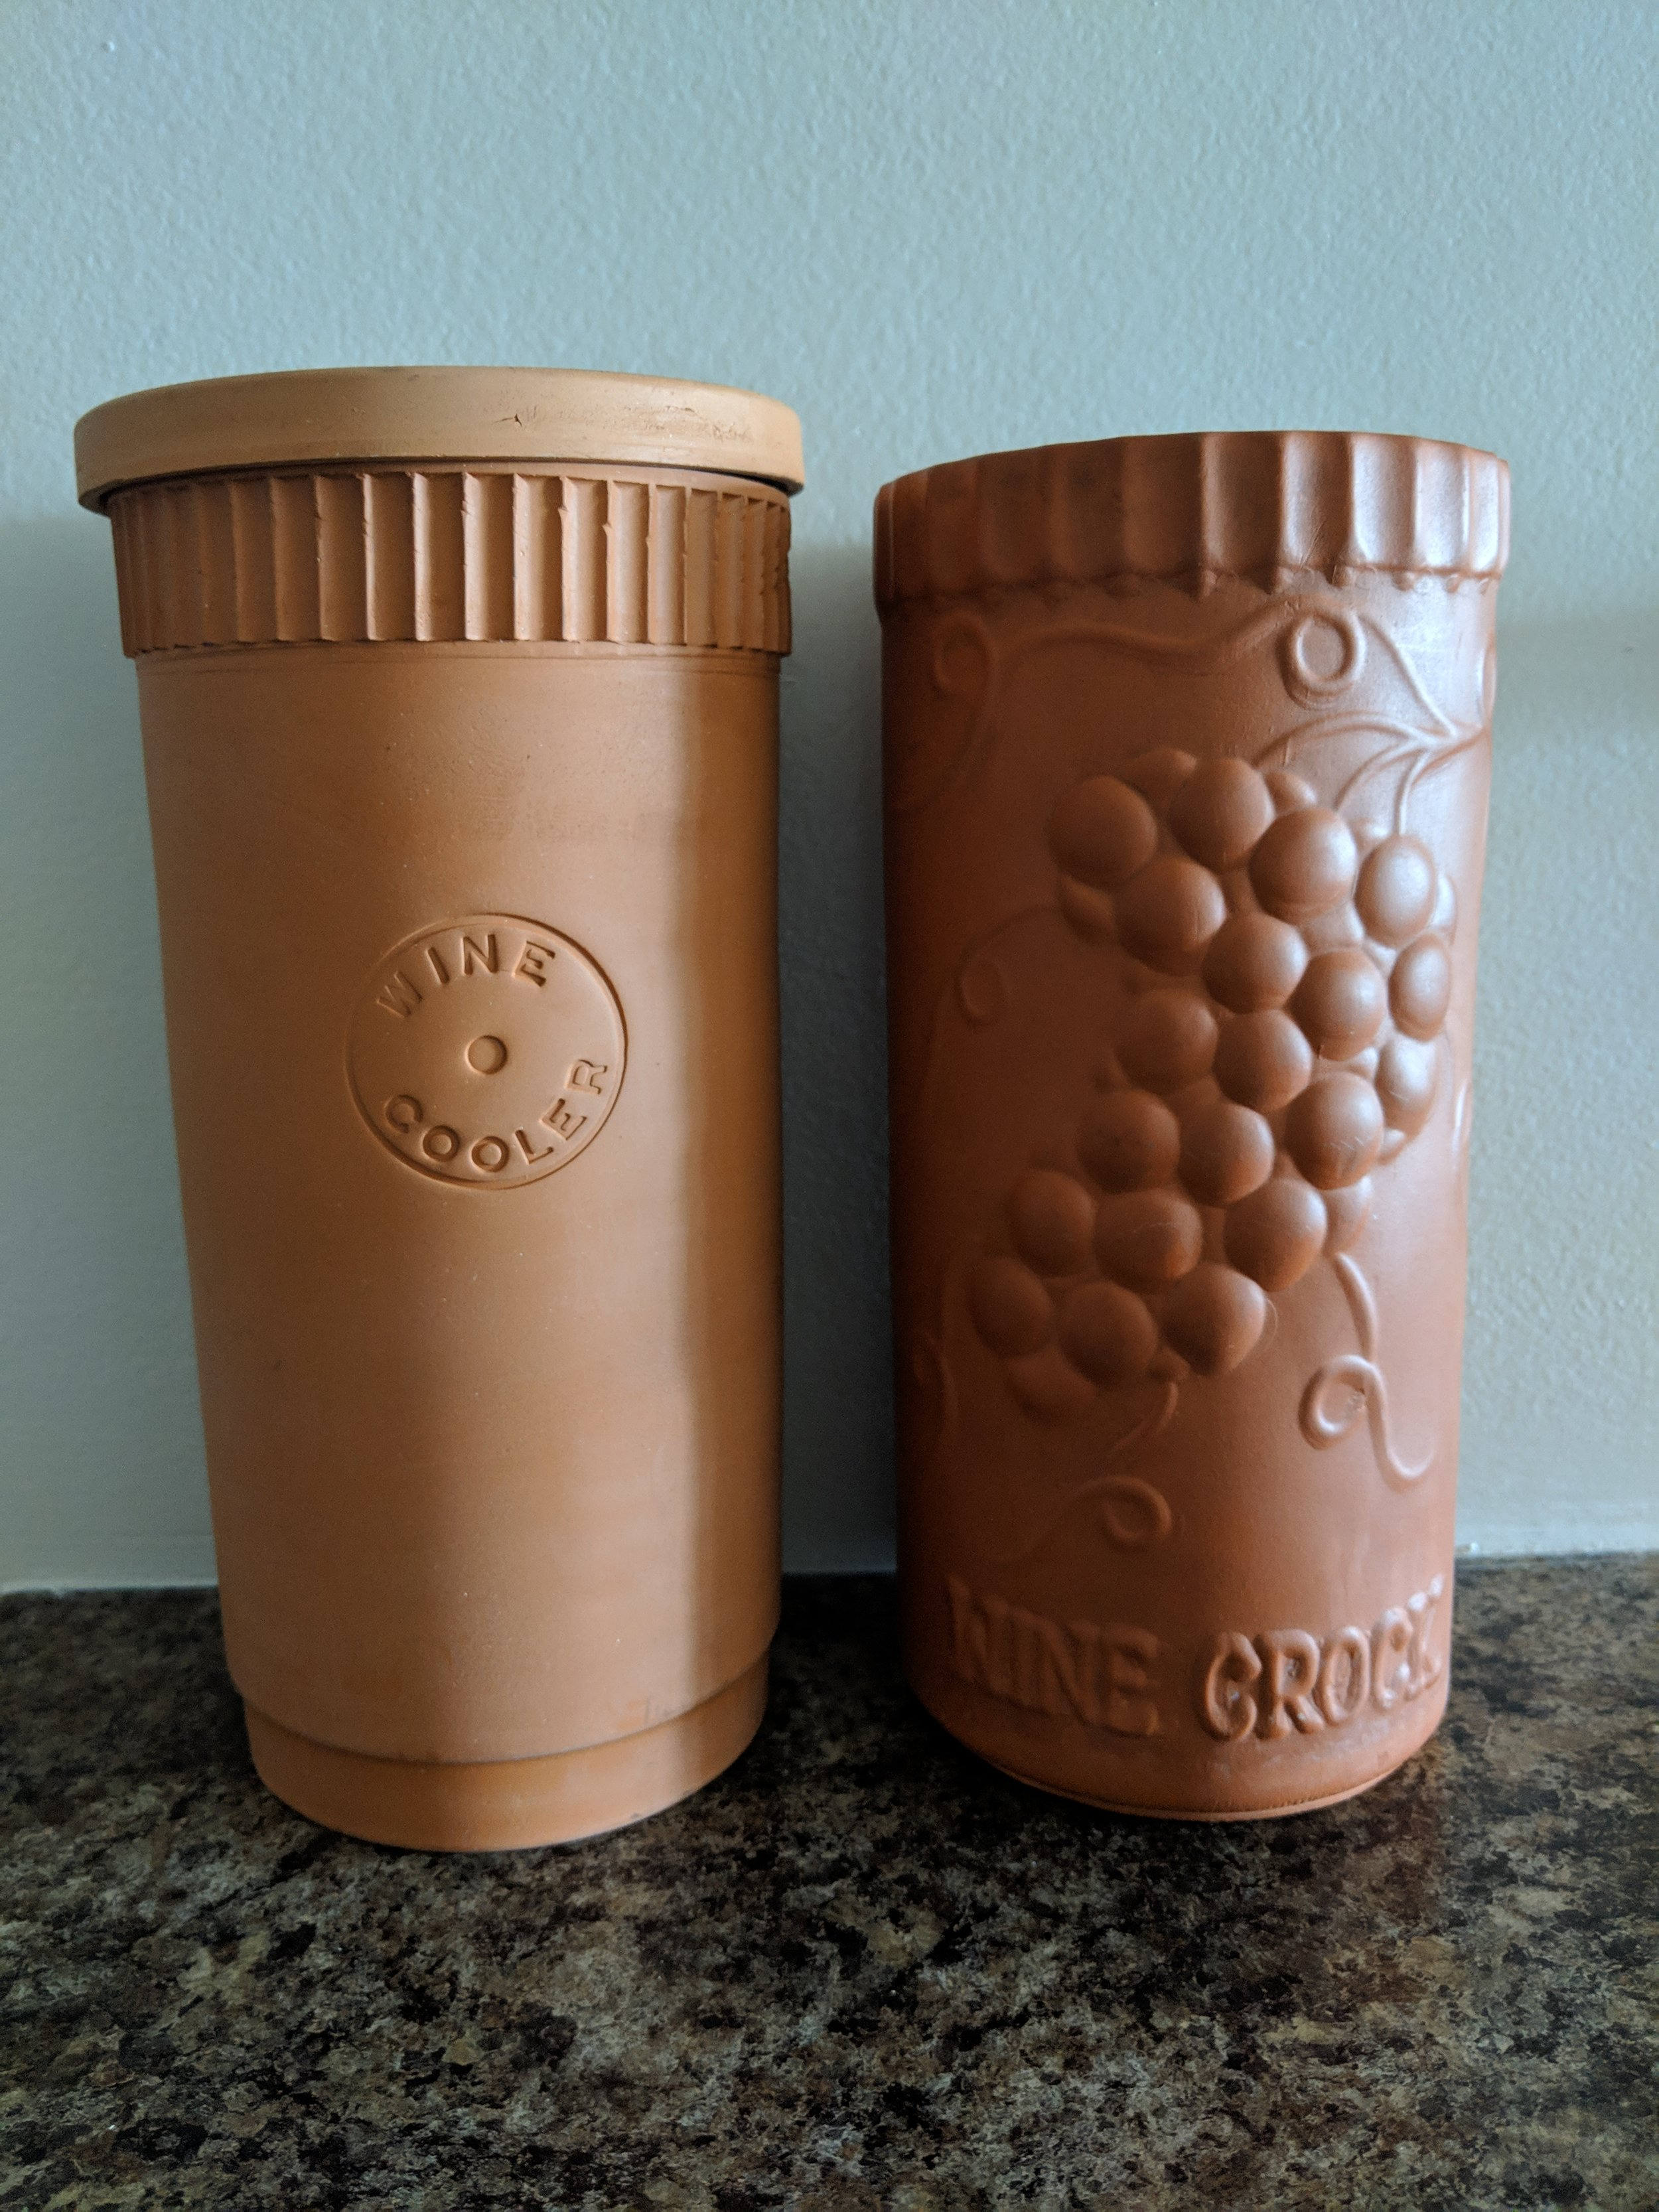 """1.Terracotta wine cooler - Salvation Army, $1.99 and Goodwill, $2.99: When I found these terracotta wine chillers (same day, two separate shops) I wasn't even sure what they were! They're both stamped """"Made in Italy"""" and I've already gotten a lot of use out of them. They stay cold for hours!"""